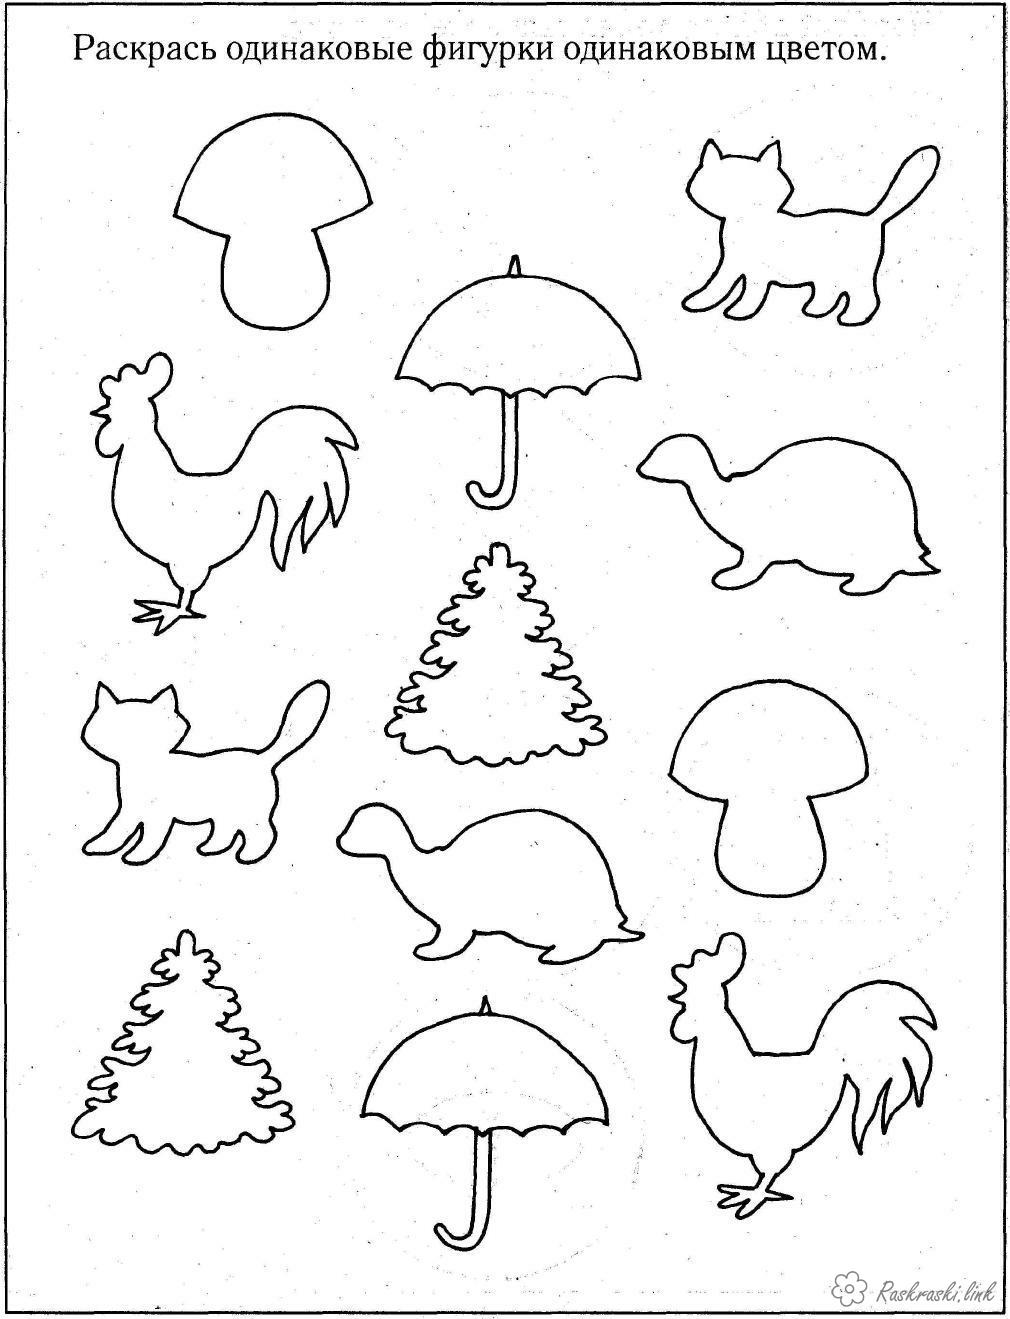 Coloring Simple coloring pages for kids Kids coloring pages figures of animals and objects